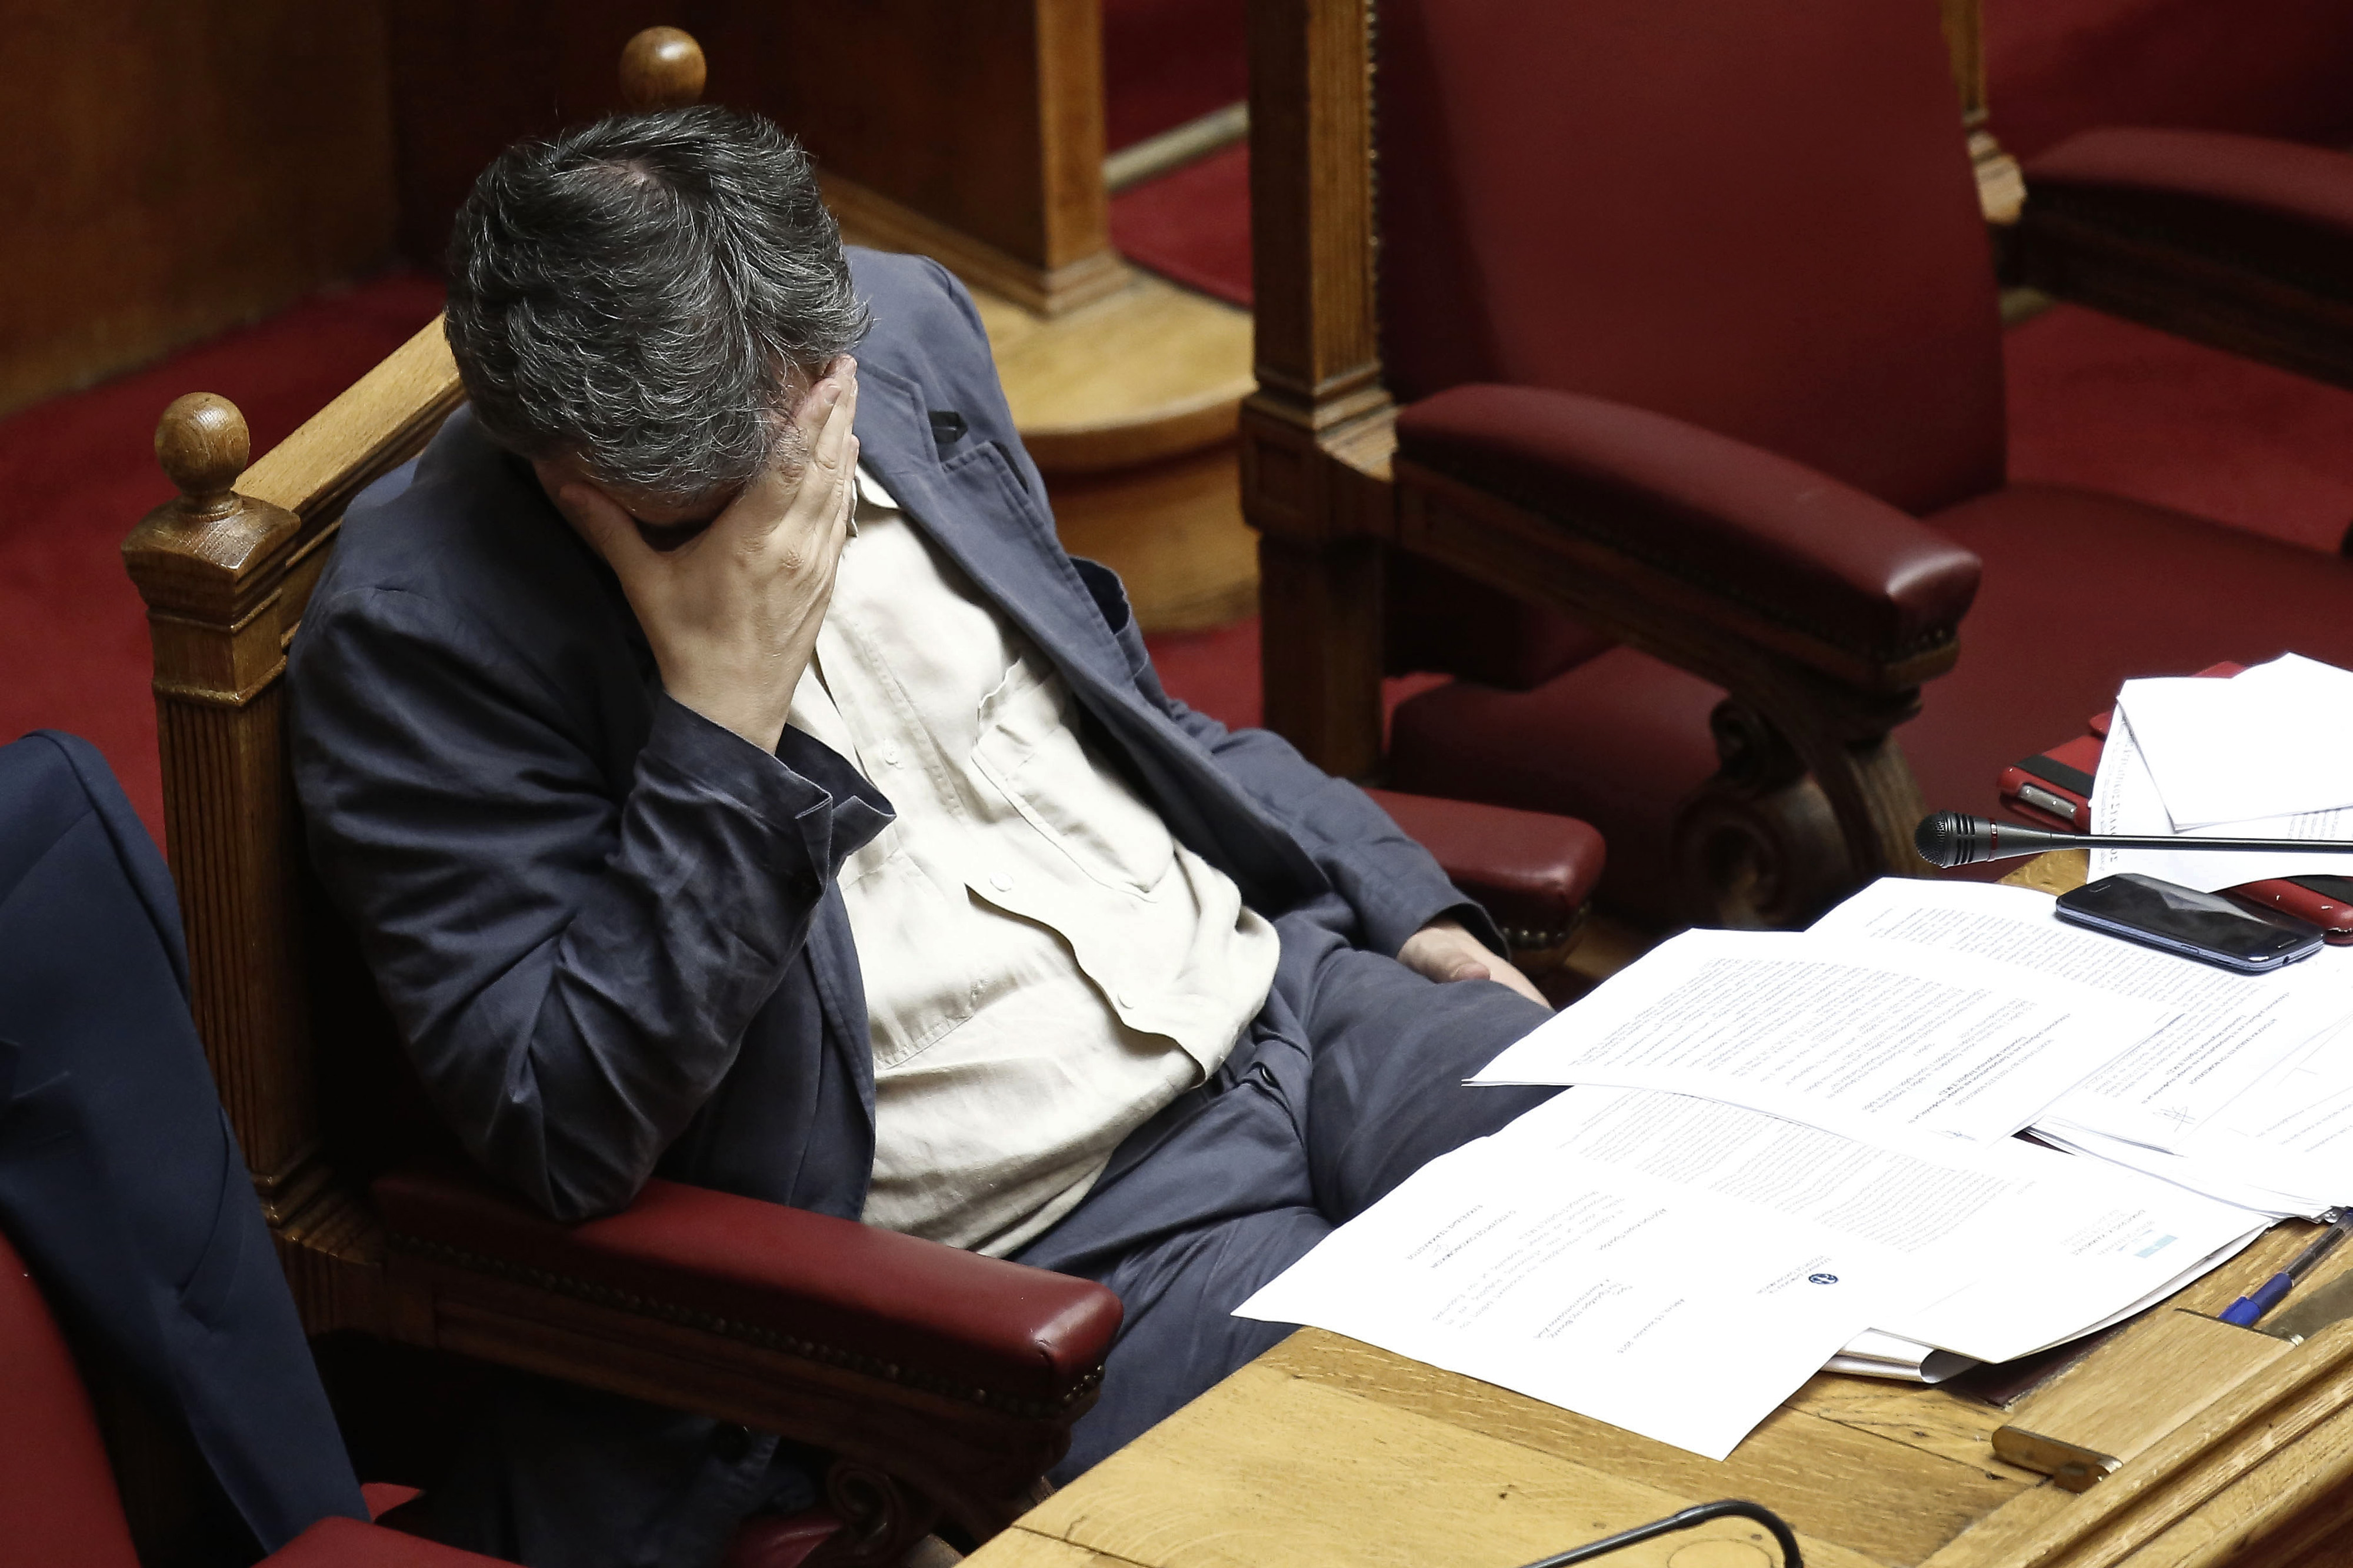 Euclid Tsakalotos, Greece's finance minister, pauses while attending a parliamentary meeting in Athens, Greece, on Wednesday, July 15, 2015. Parliament will vote Wednesday night on the measures Greece's creditors demanded as a condition for aid as capital controls ravage an economy that has already shrunk by a quarter since 2009. Photographer: Kostas Tsironis/Bloomberg *** Local Caption *** Euclid Tsakalotos